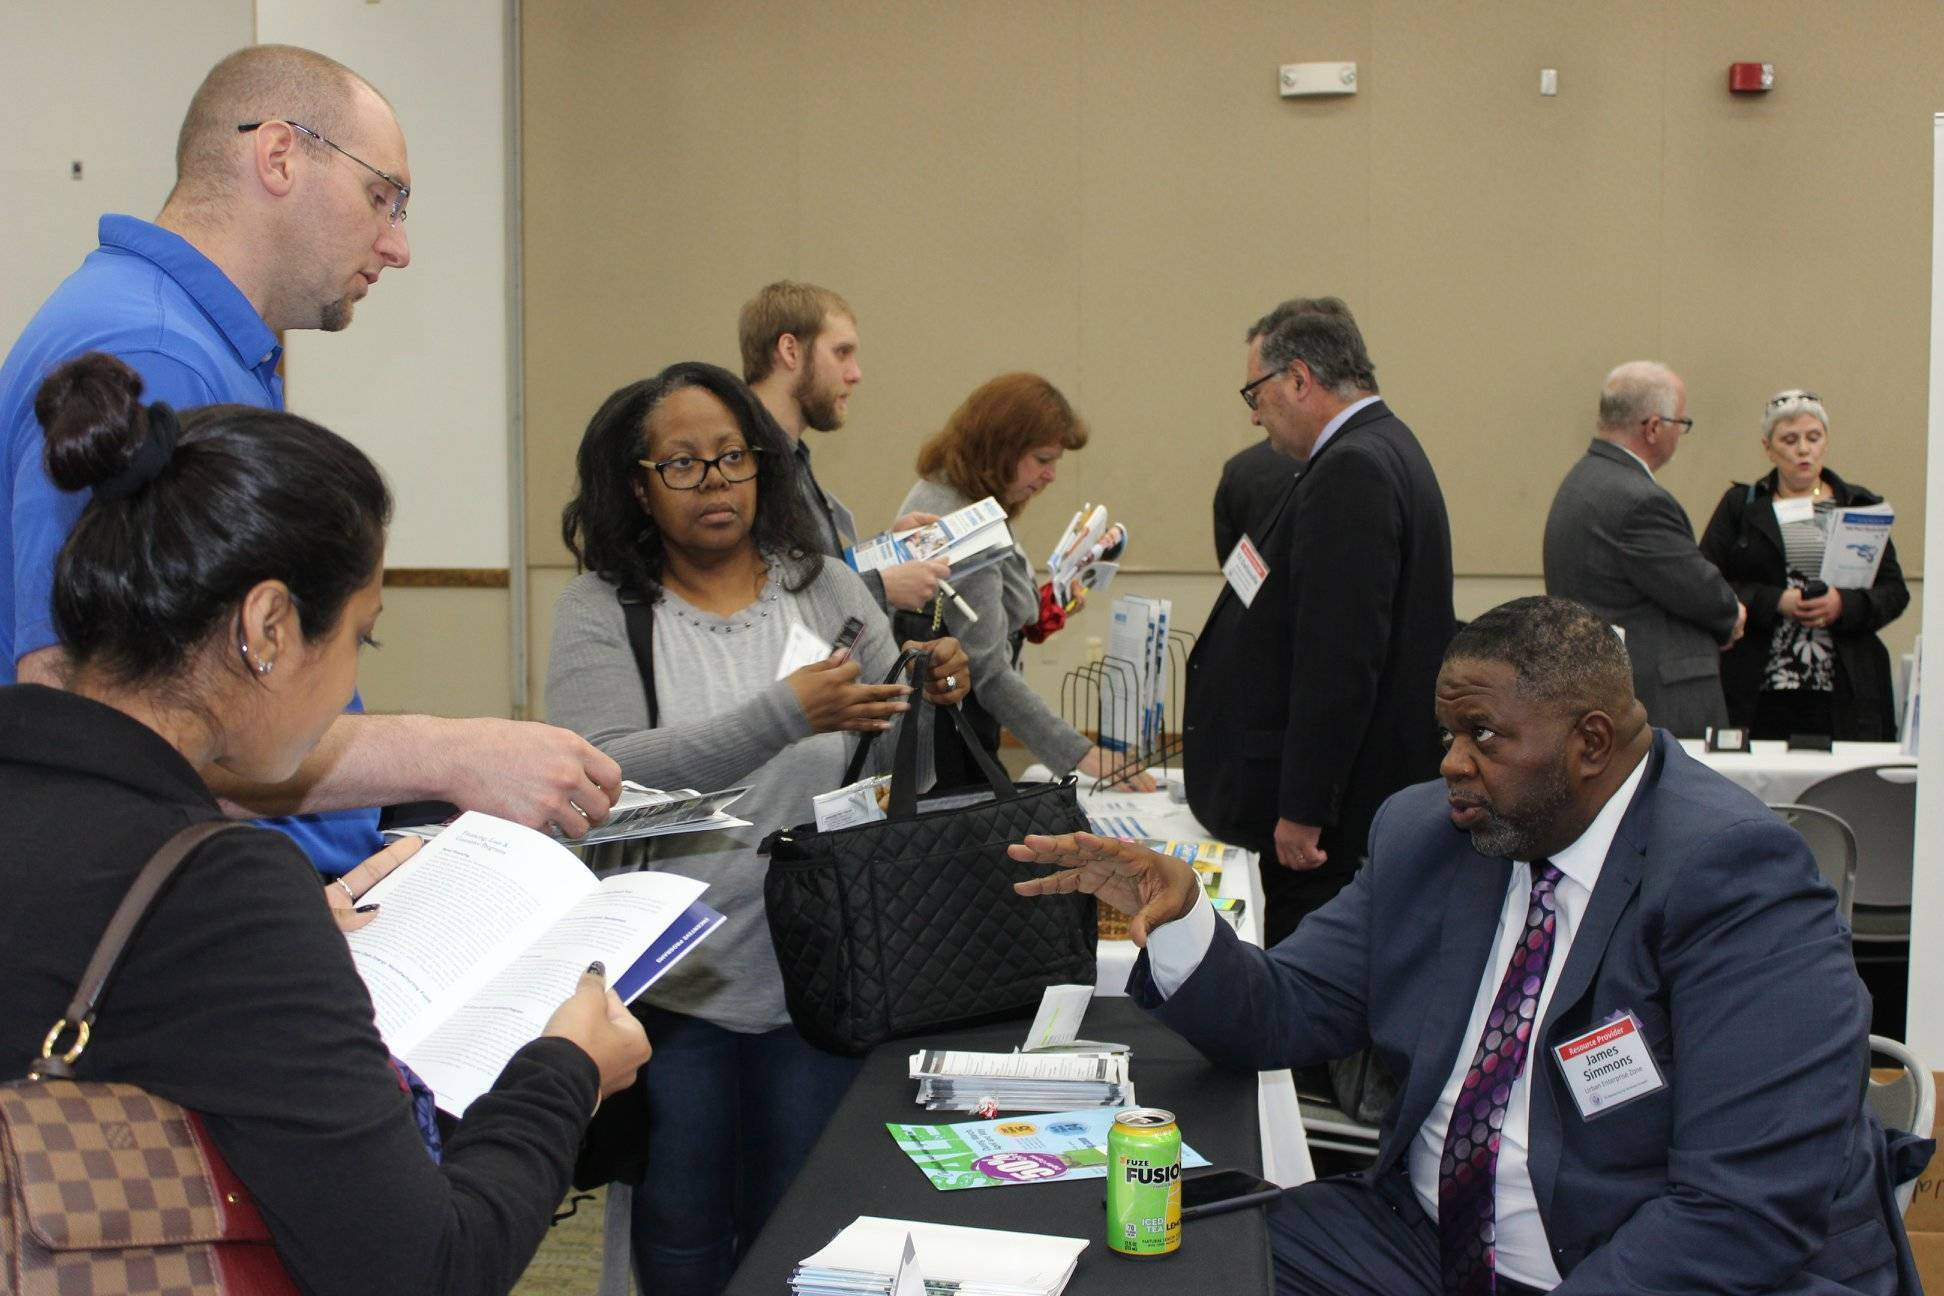 nj resources for business growth newsletter.jpg